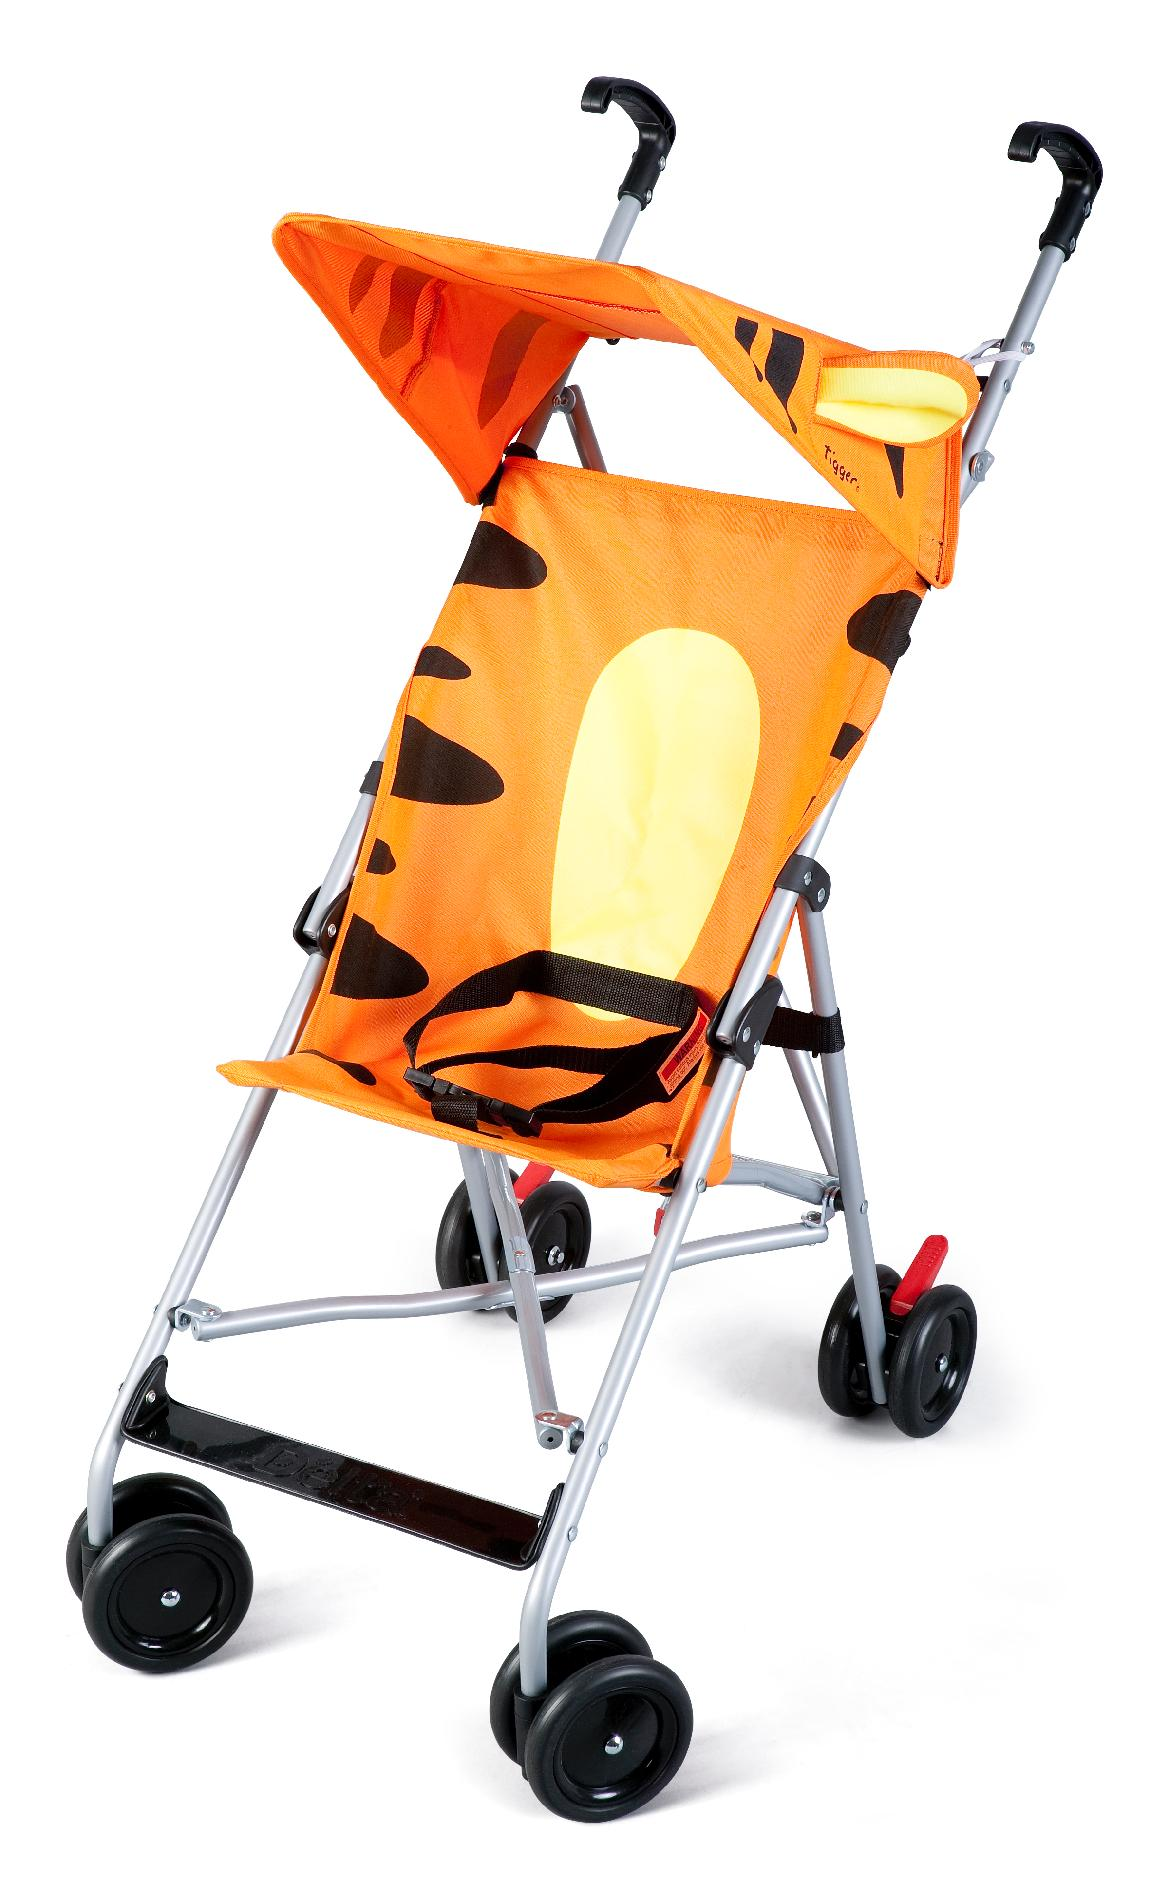 Disney Baby Umbrella Stroller with Canopy - Recommended ...